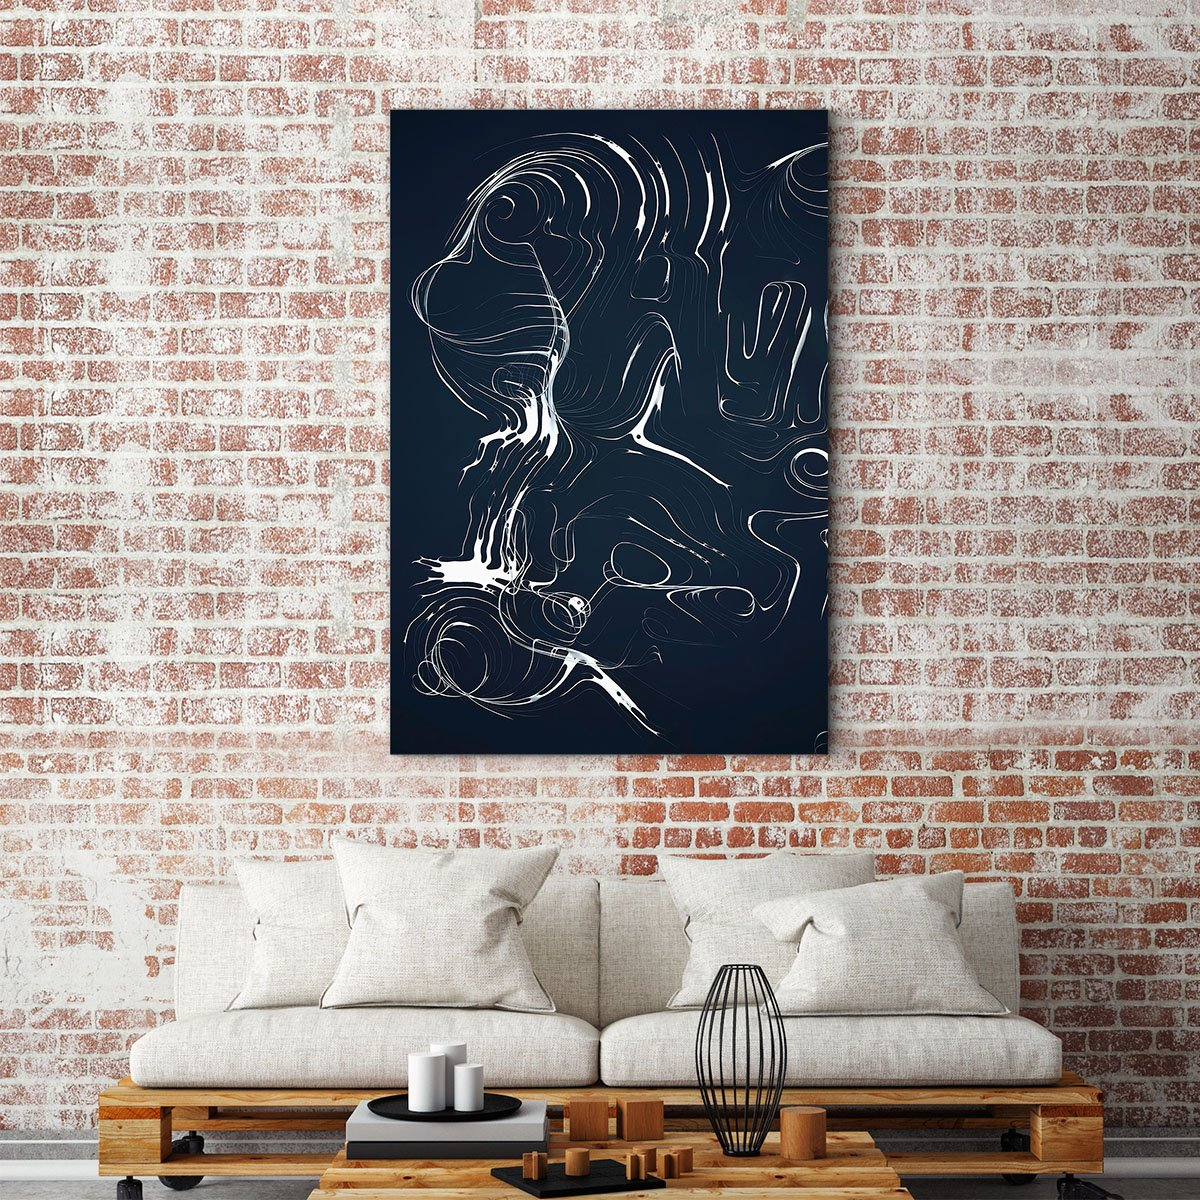 Elegant lines abstract decorative painting 003